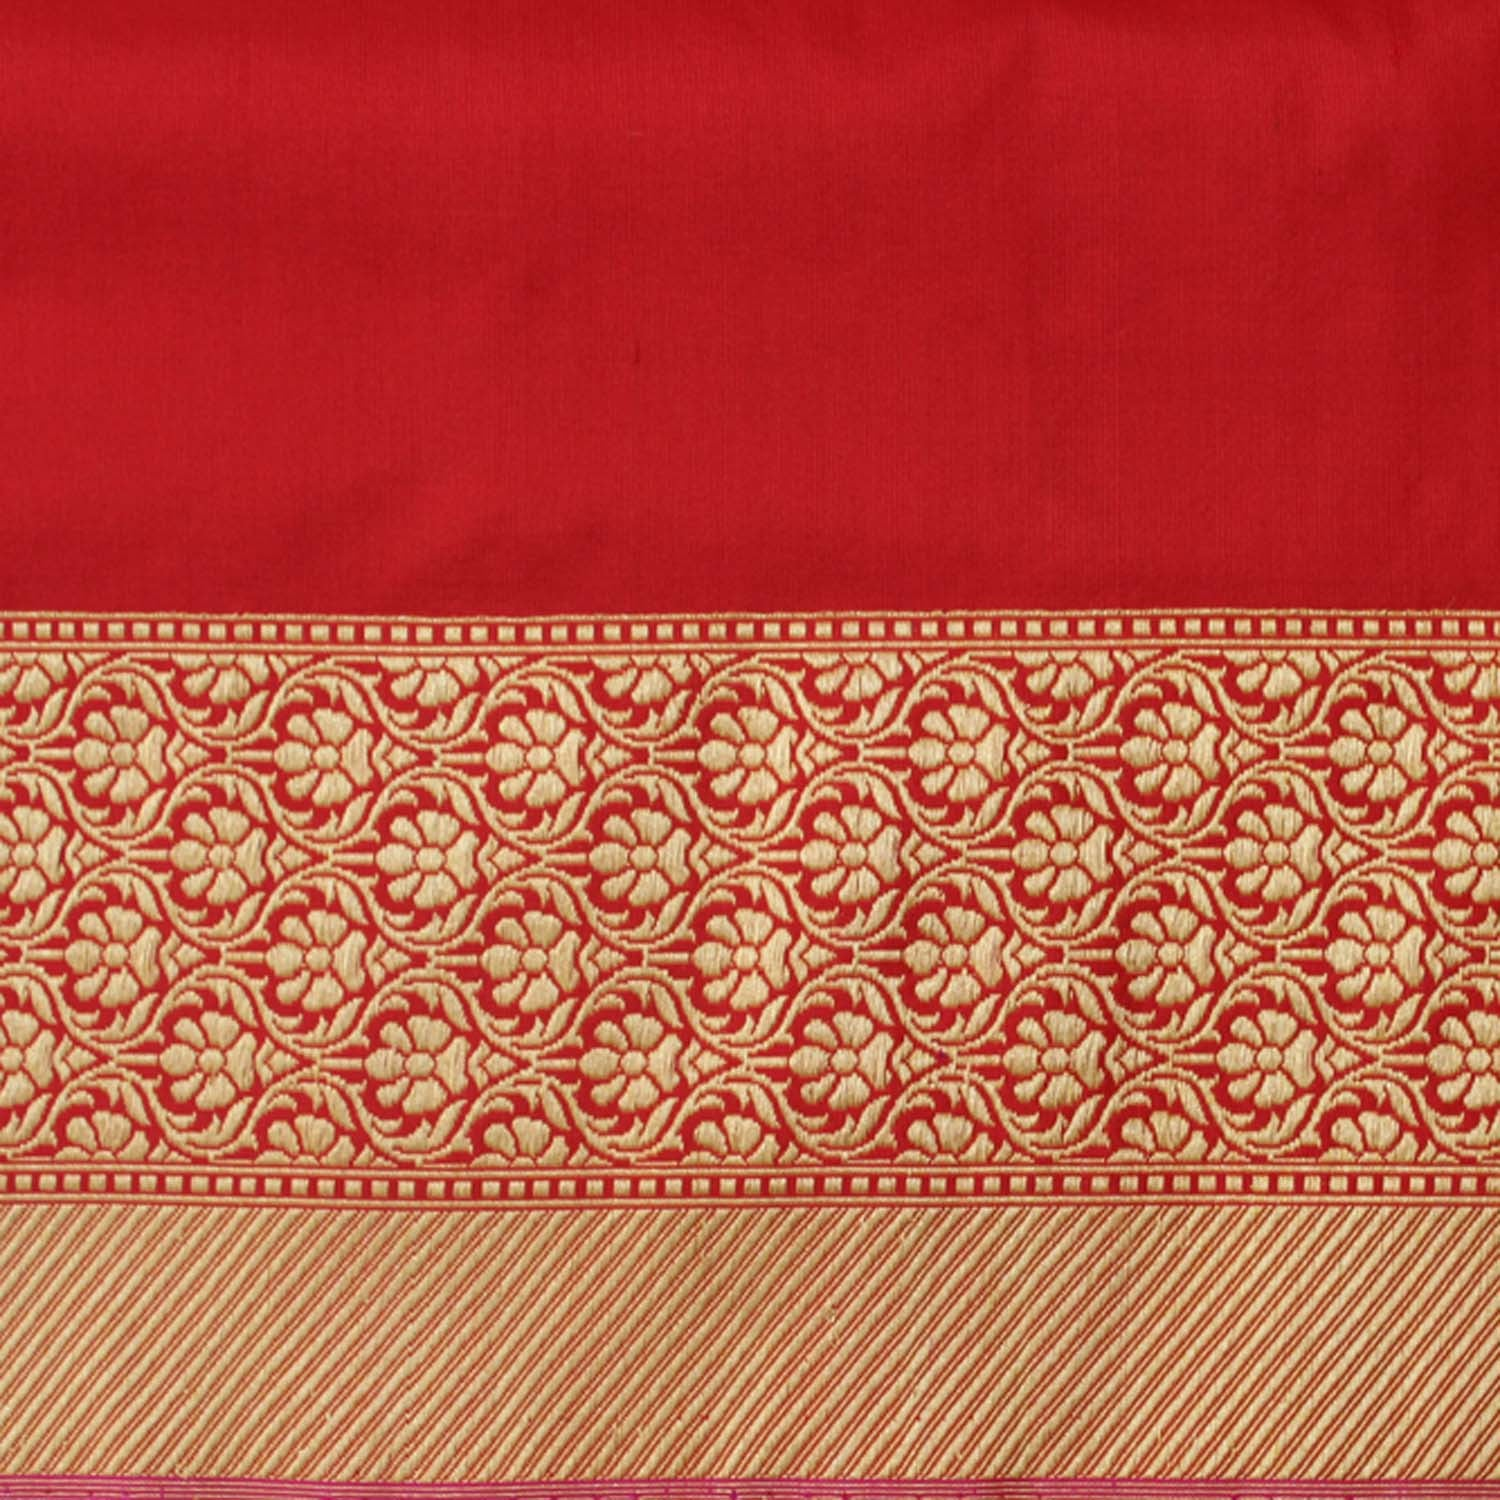 Red Pure Katan Silk Kadwa Banarasi Handloom Saree - Tilfi - 4